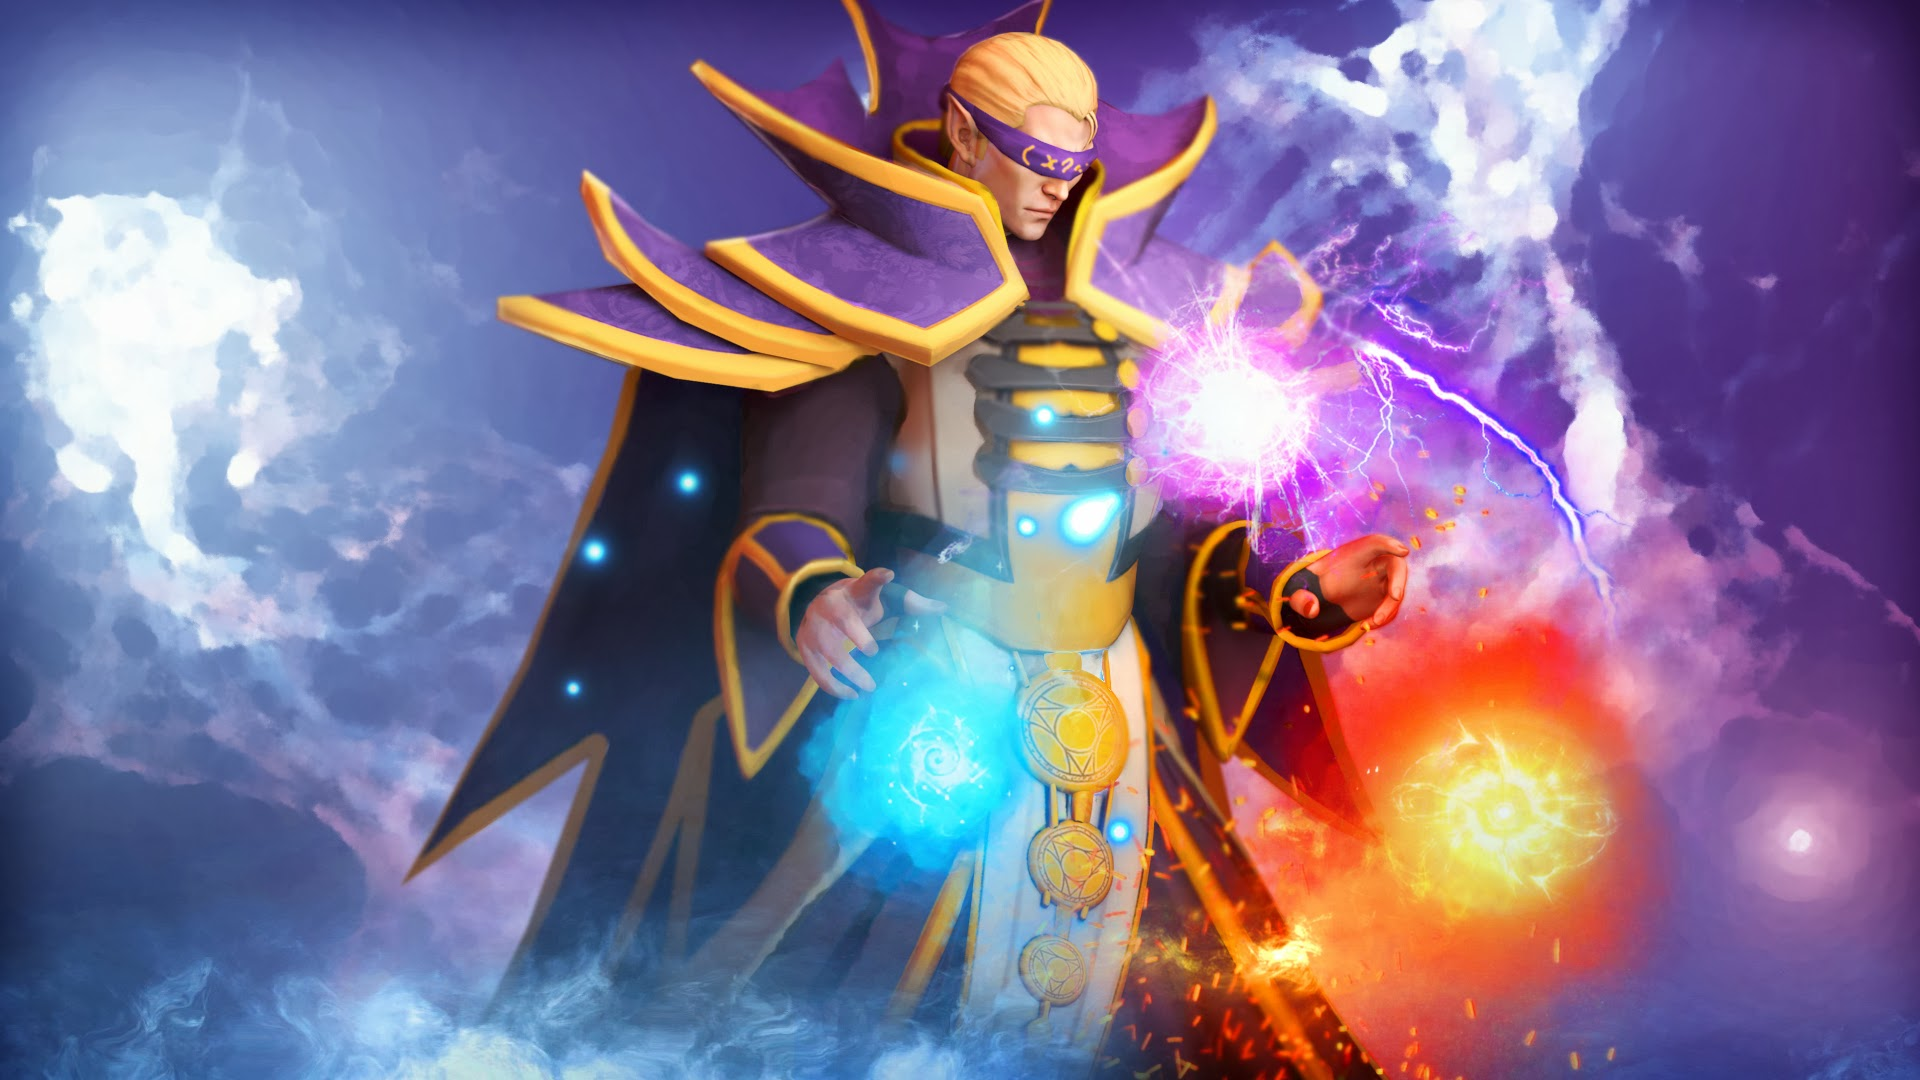 invoker cool elements dota 2 hero hd wallpaper 1920x1080 4y 1920x1080